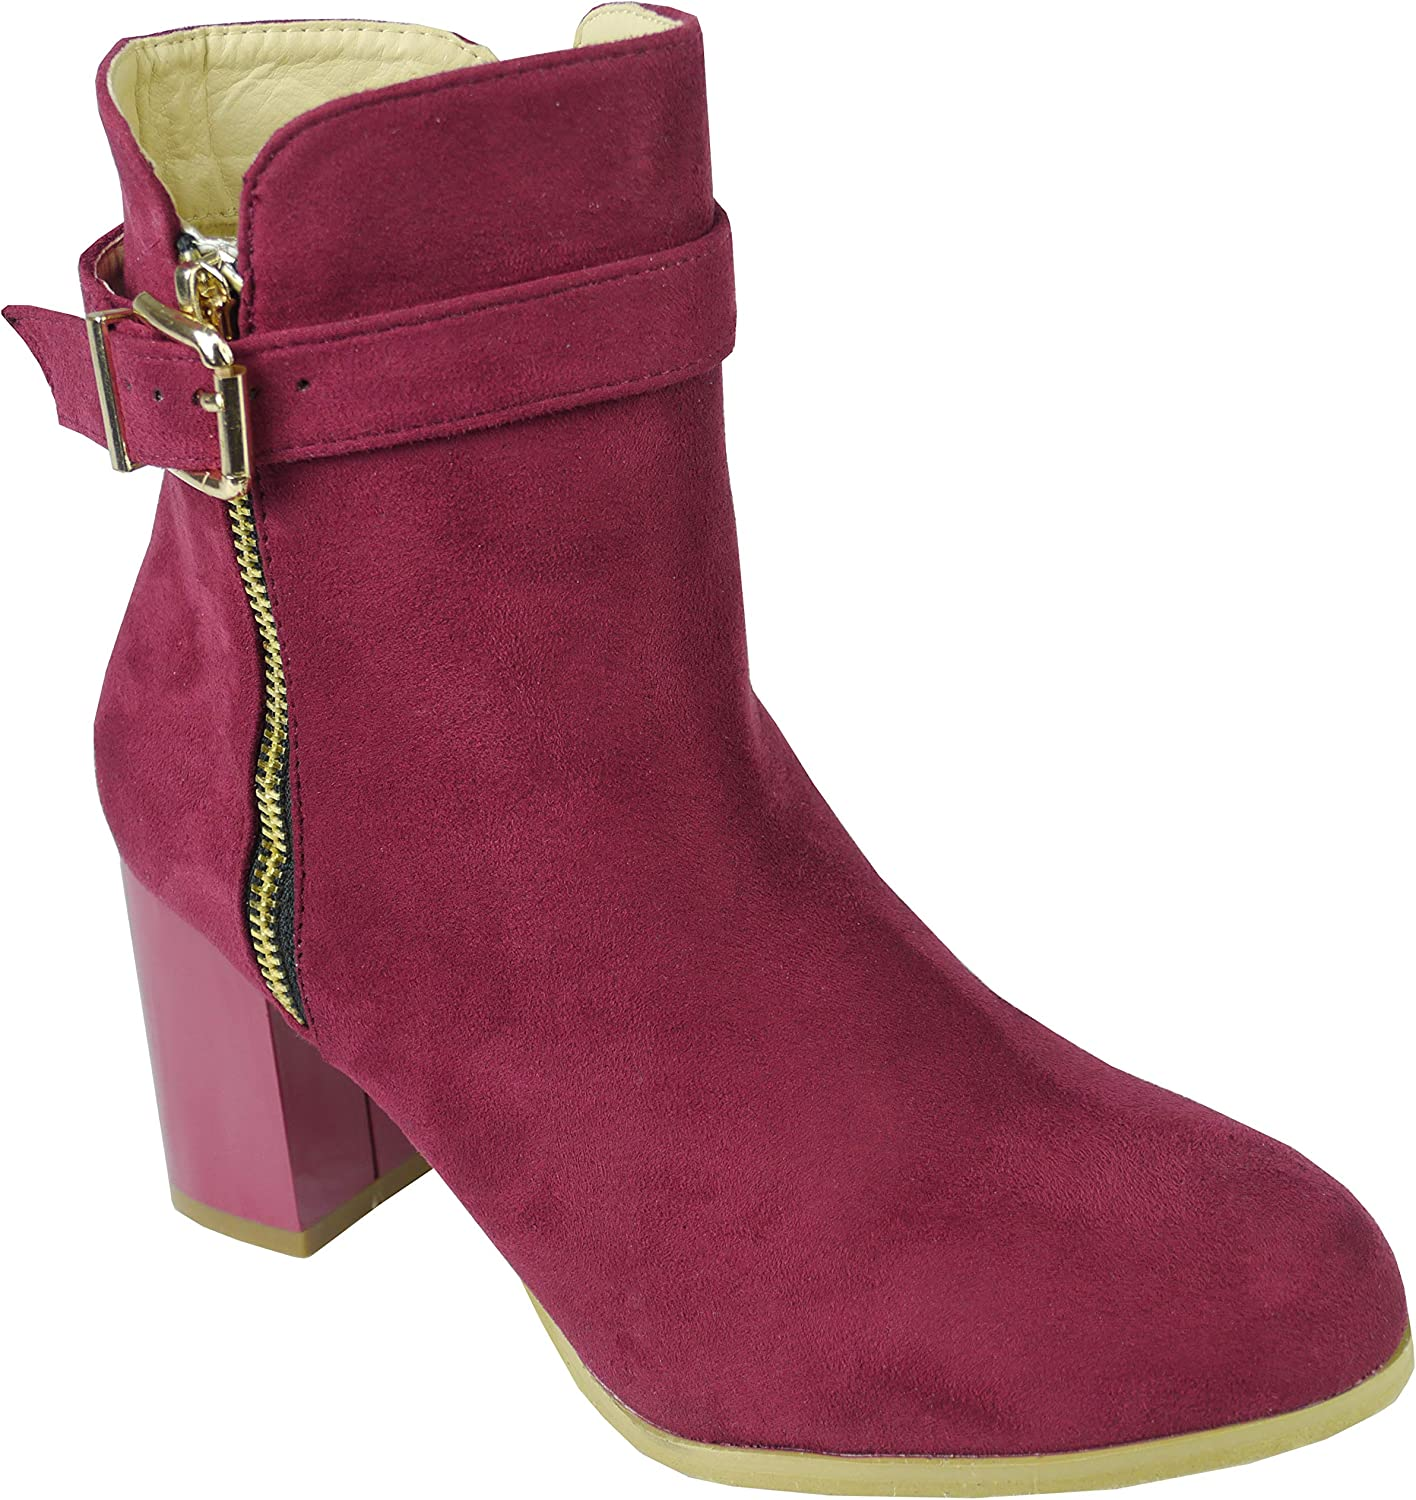 BeMeesh Femme Chaussures Talons Boucle Cheville Bottines Zip Lateral